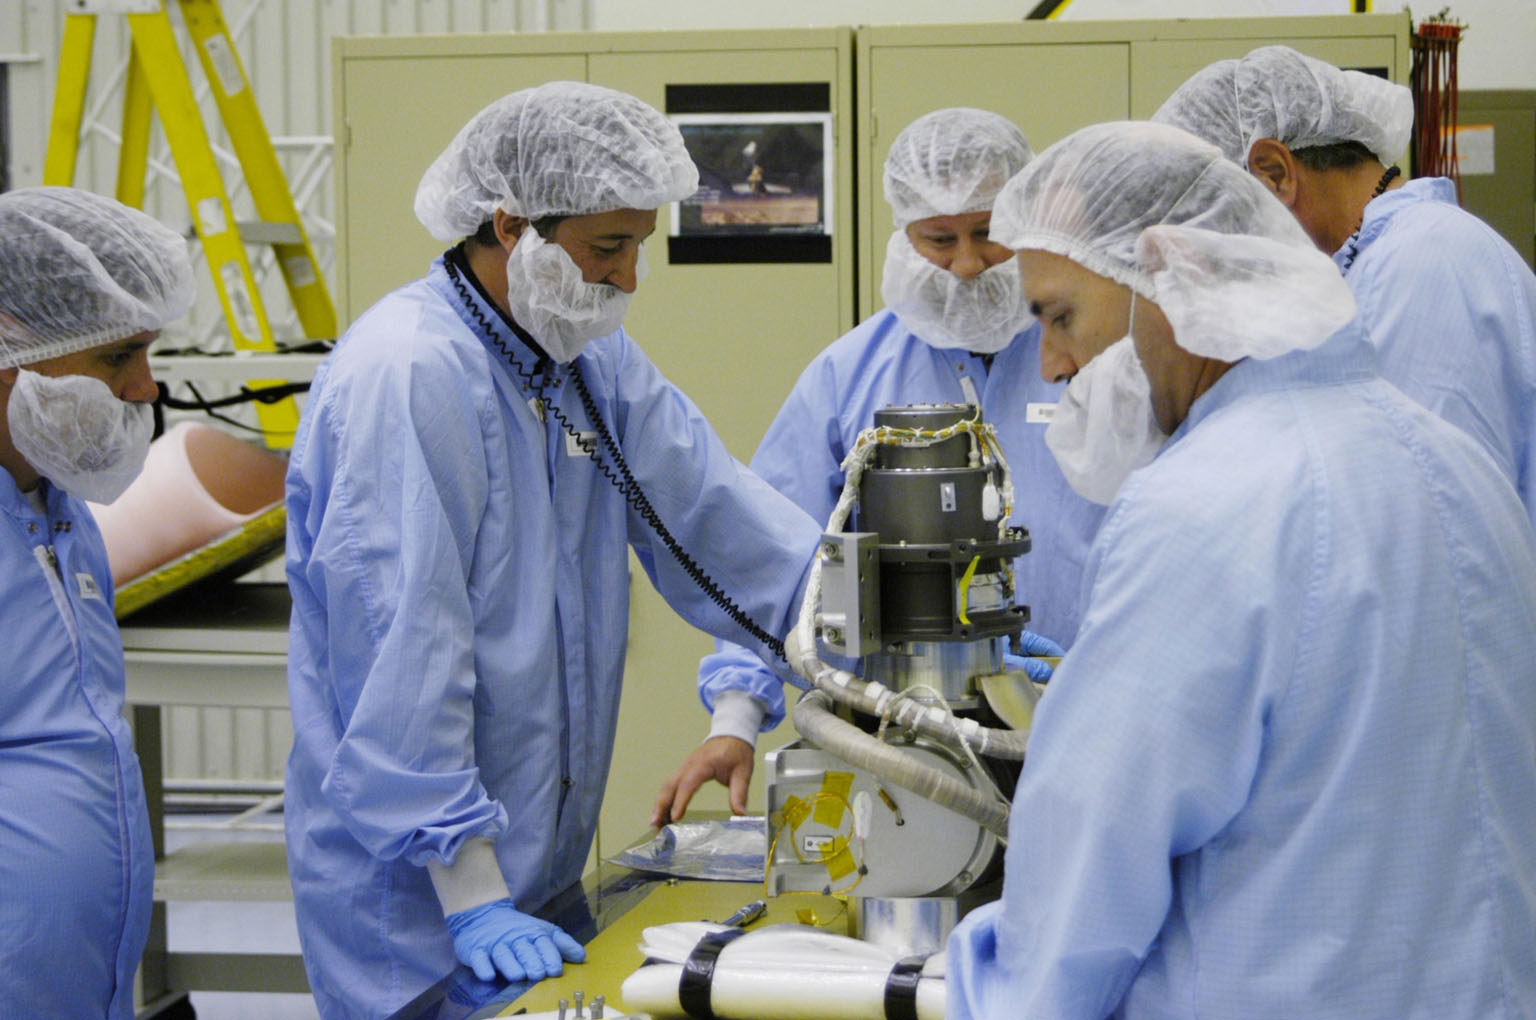 KENNEDY SPACE CENTER, FLA. - In the Payload Hazardous Servicing Facility at NASA?s Kennedy Space Center, engineers prepare to install the gimbal on the Mars Reconnaissance Orbiter (MRO) solar panel. A gimbal is an appliance that allows an object to remain horizontal even as its support tips. In the PHSF, the spacecraft will undergo multiple mechanical assembly operations and electrical tests to verify its readiness for launch. A major deployment test will check out the spacecraft?s large solar arrays. The MRO was built by Lockheed Martin for NASA?s Jet Propulsion Laboratory in California. It is the next major step in Mars exploration and scheduled for launch from Cape Canaveral Air Force Station in a window opening Aug. 10. The MRO is an important next step in fulfilling NASA?s vision of space exploration and ultimately sending human explorers to Mars and beyond.